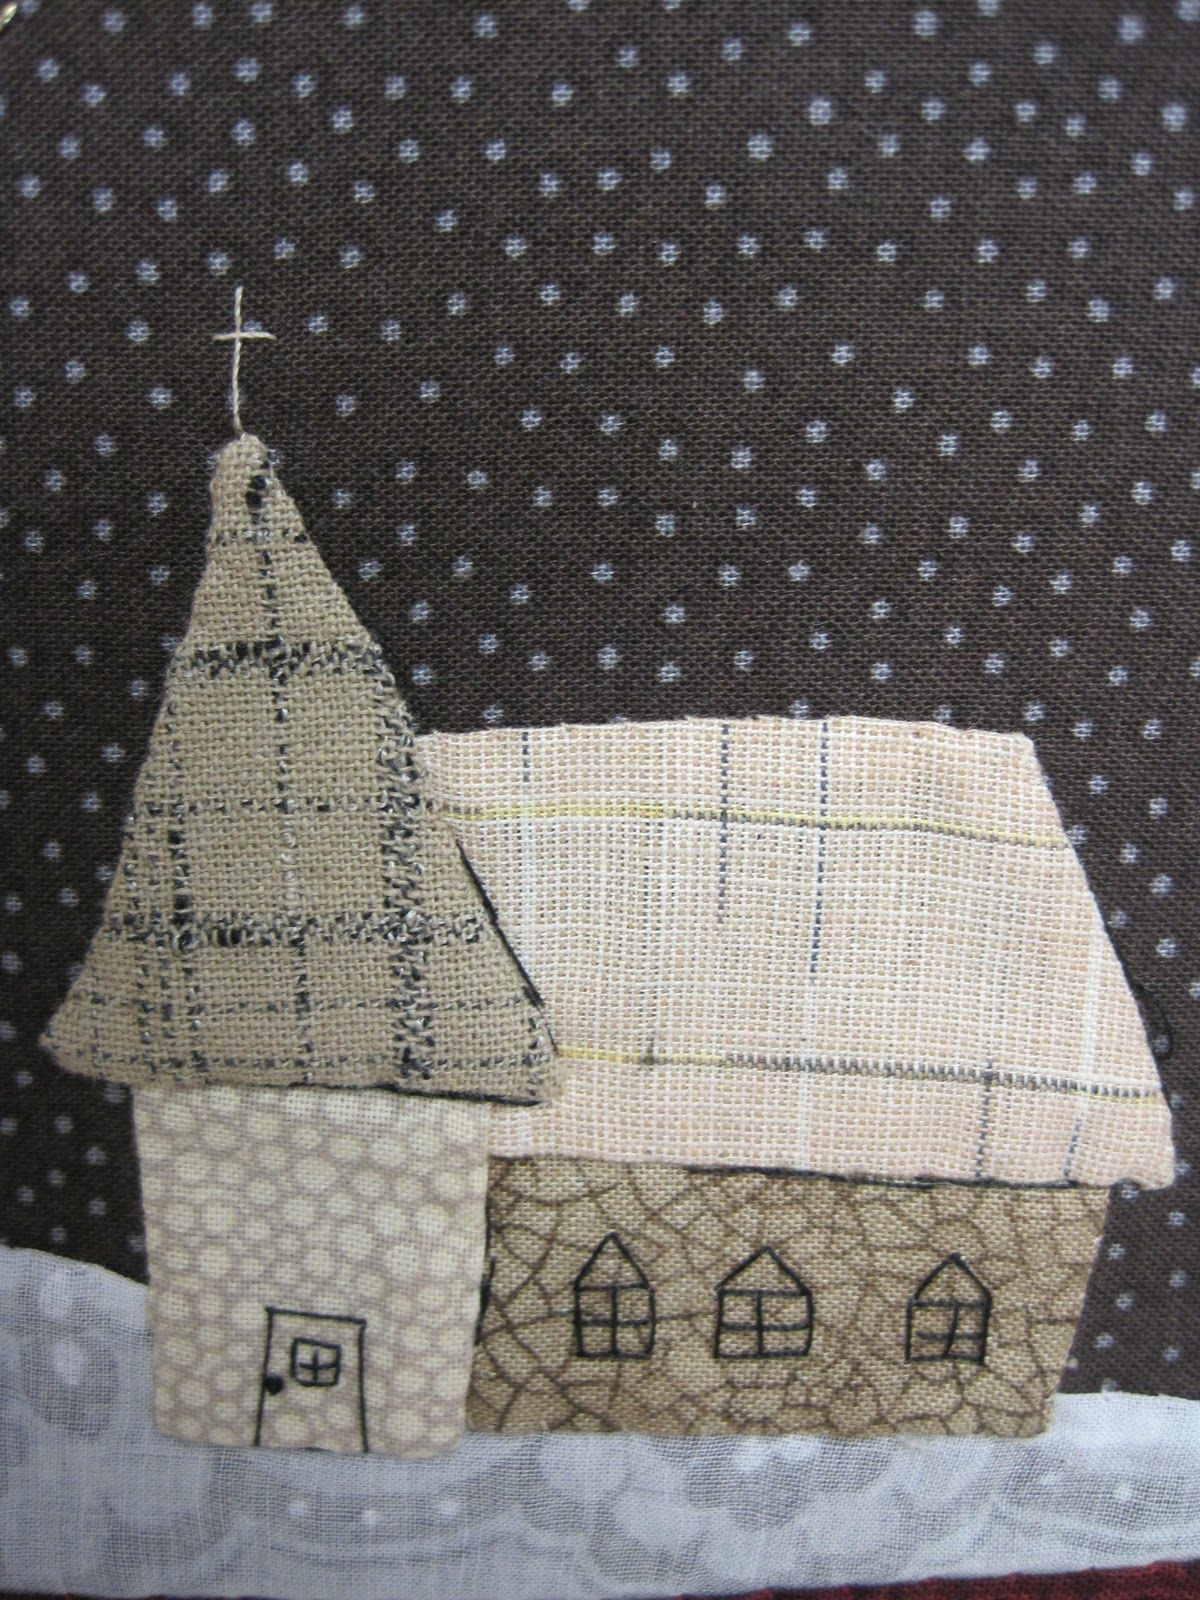 Hen House Studio: ANOTHER JANET BOLTON